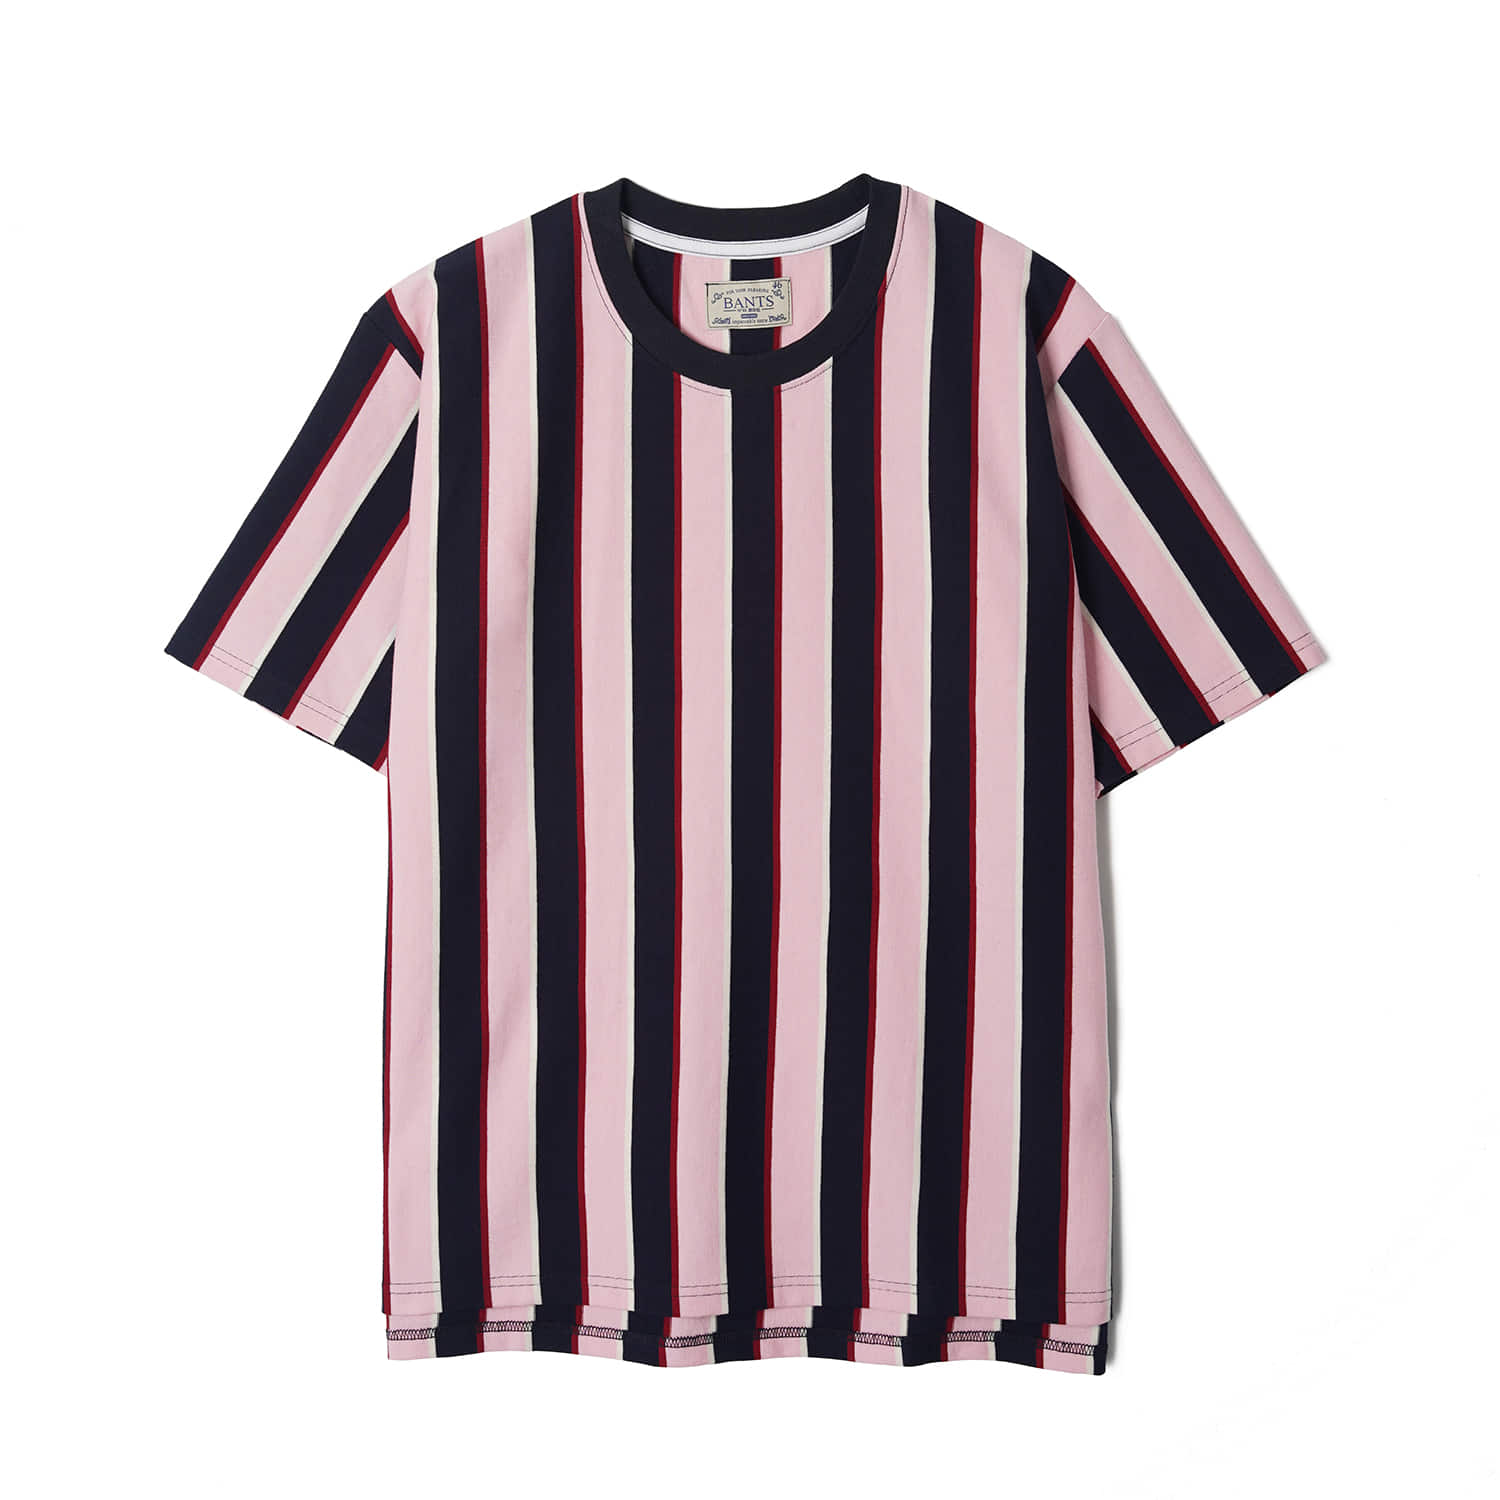 WSK Vertical Stripe Cotton T-shirt Half - Pink x NavyBANTS(반츠)